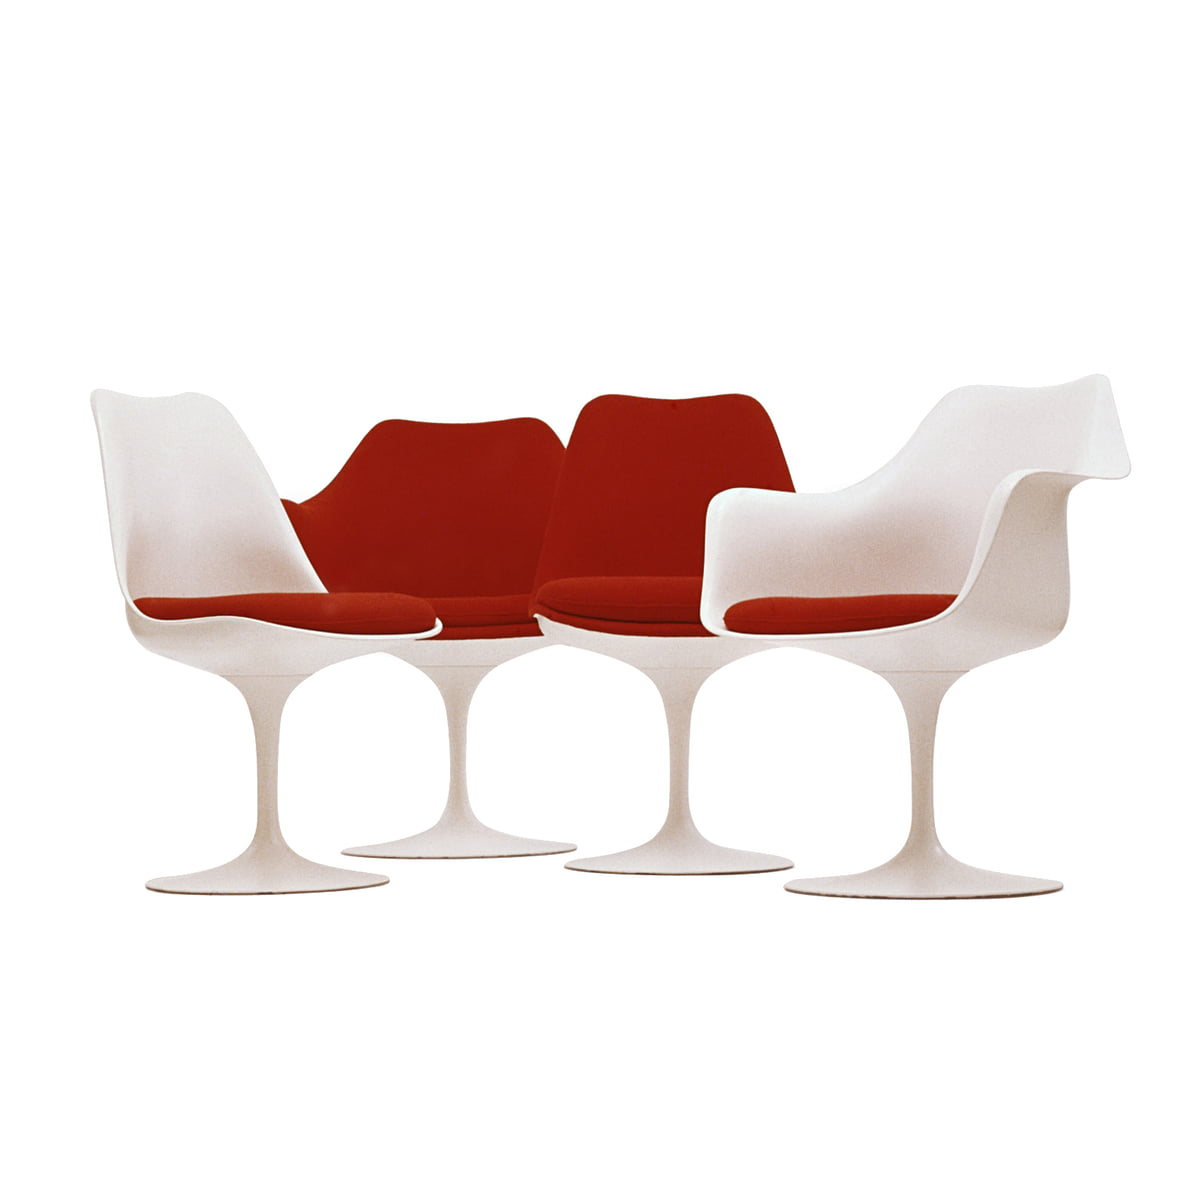 Knoll Home Design Shop: Saarinen Tulip Chair By Knoll In Our Shop